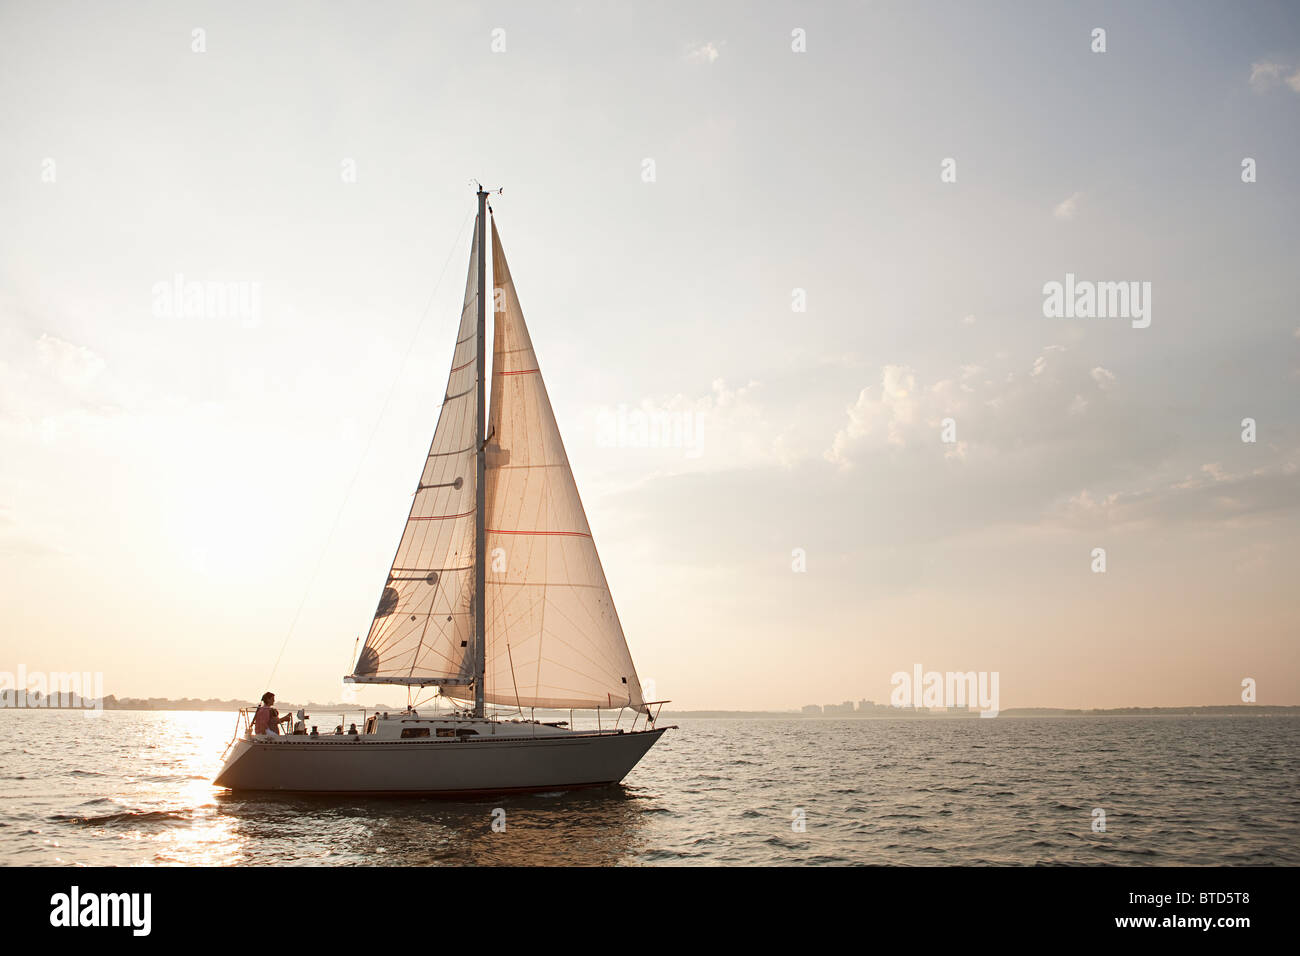 Yacht de voile sur mer Photo Stock